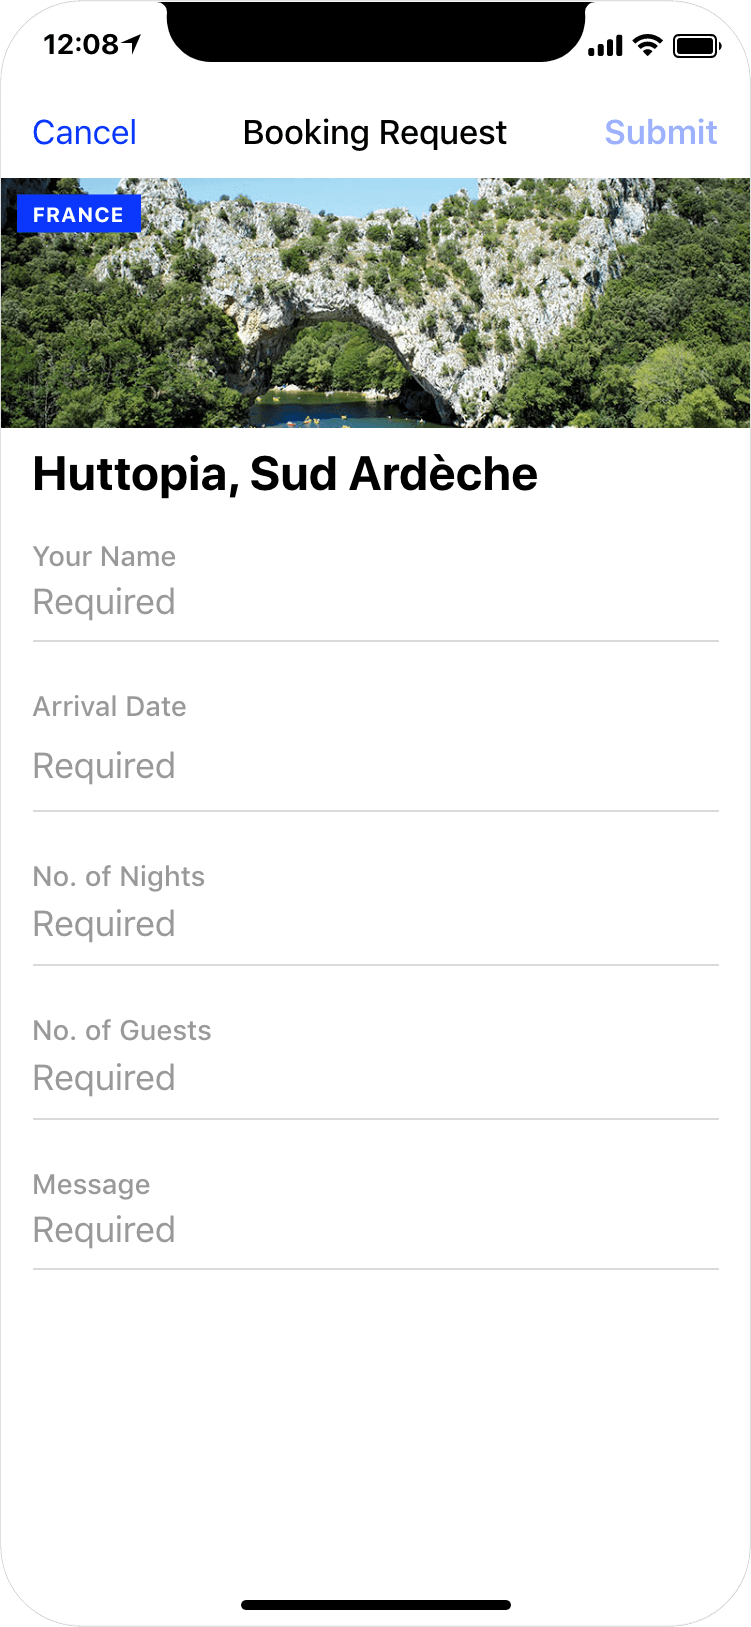 Glamping in France - booking request, app screenshot